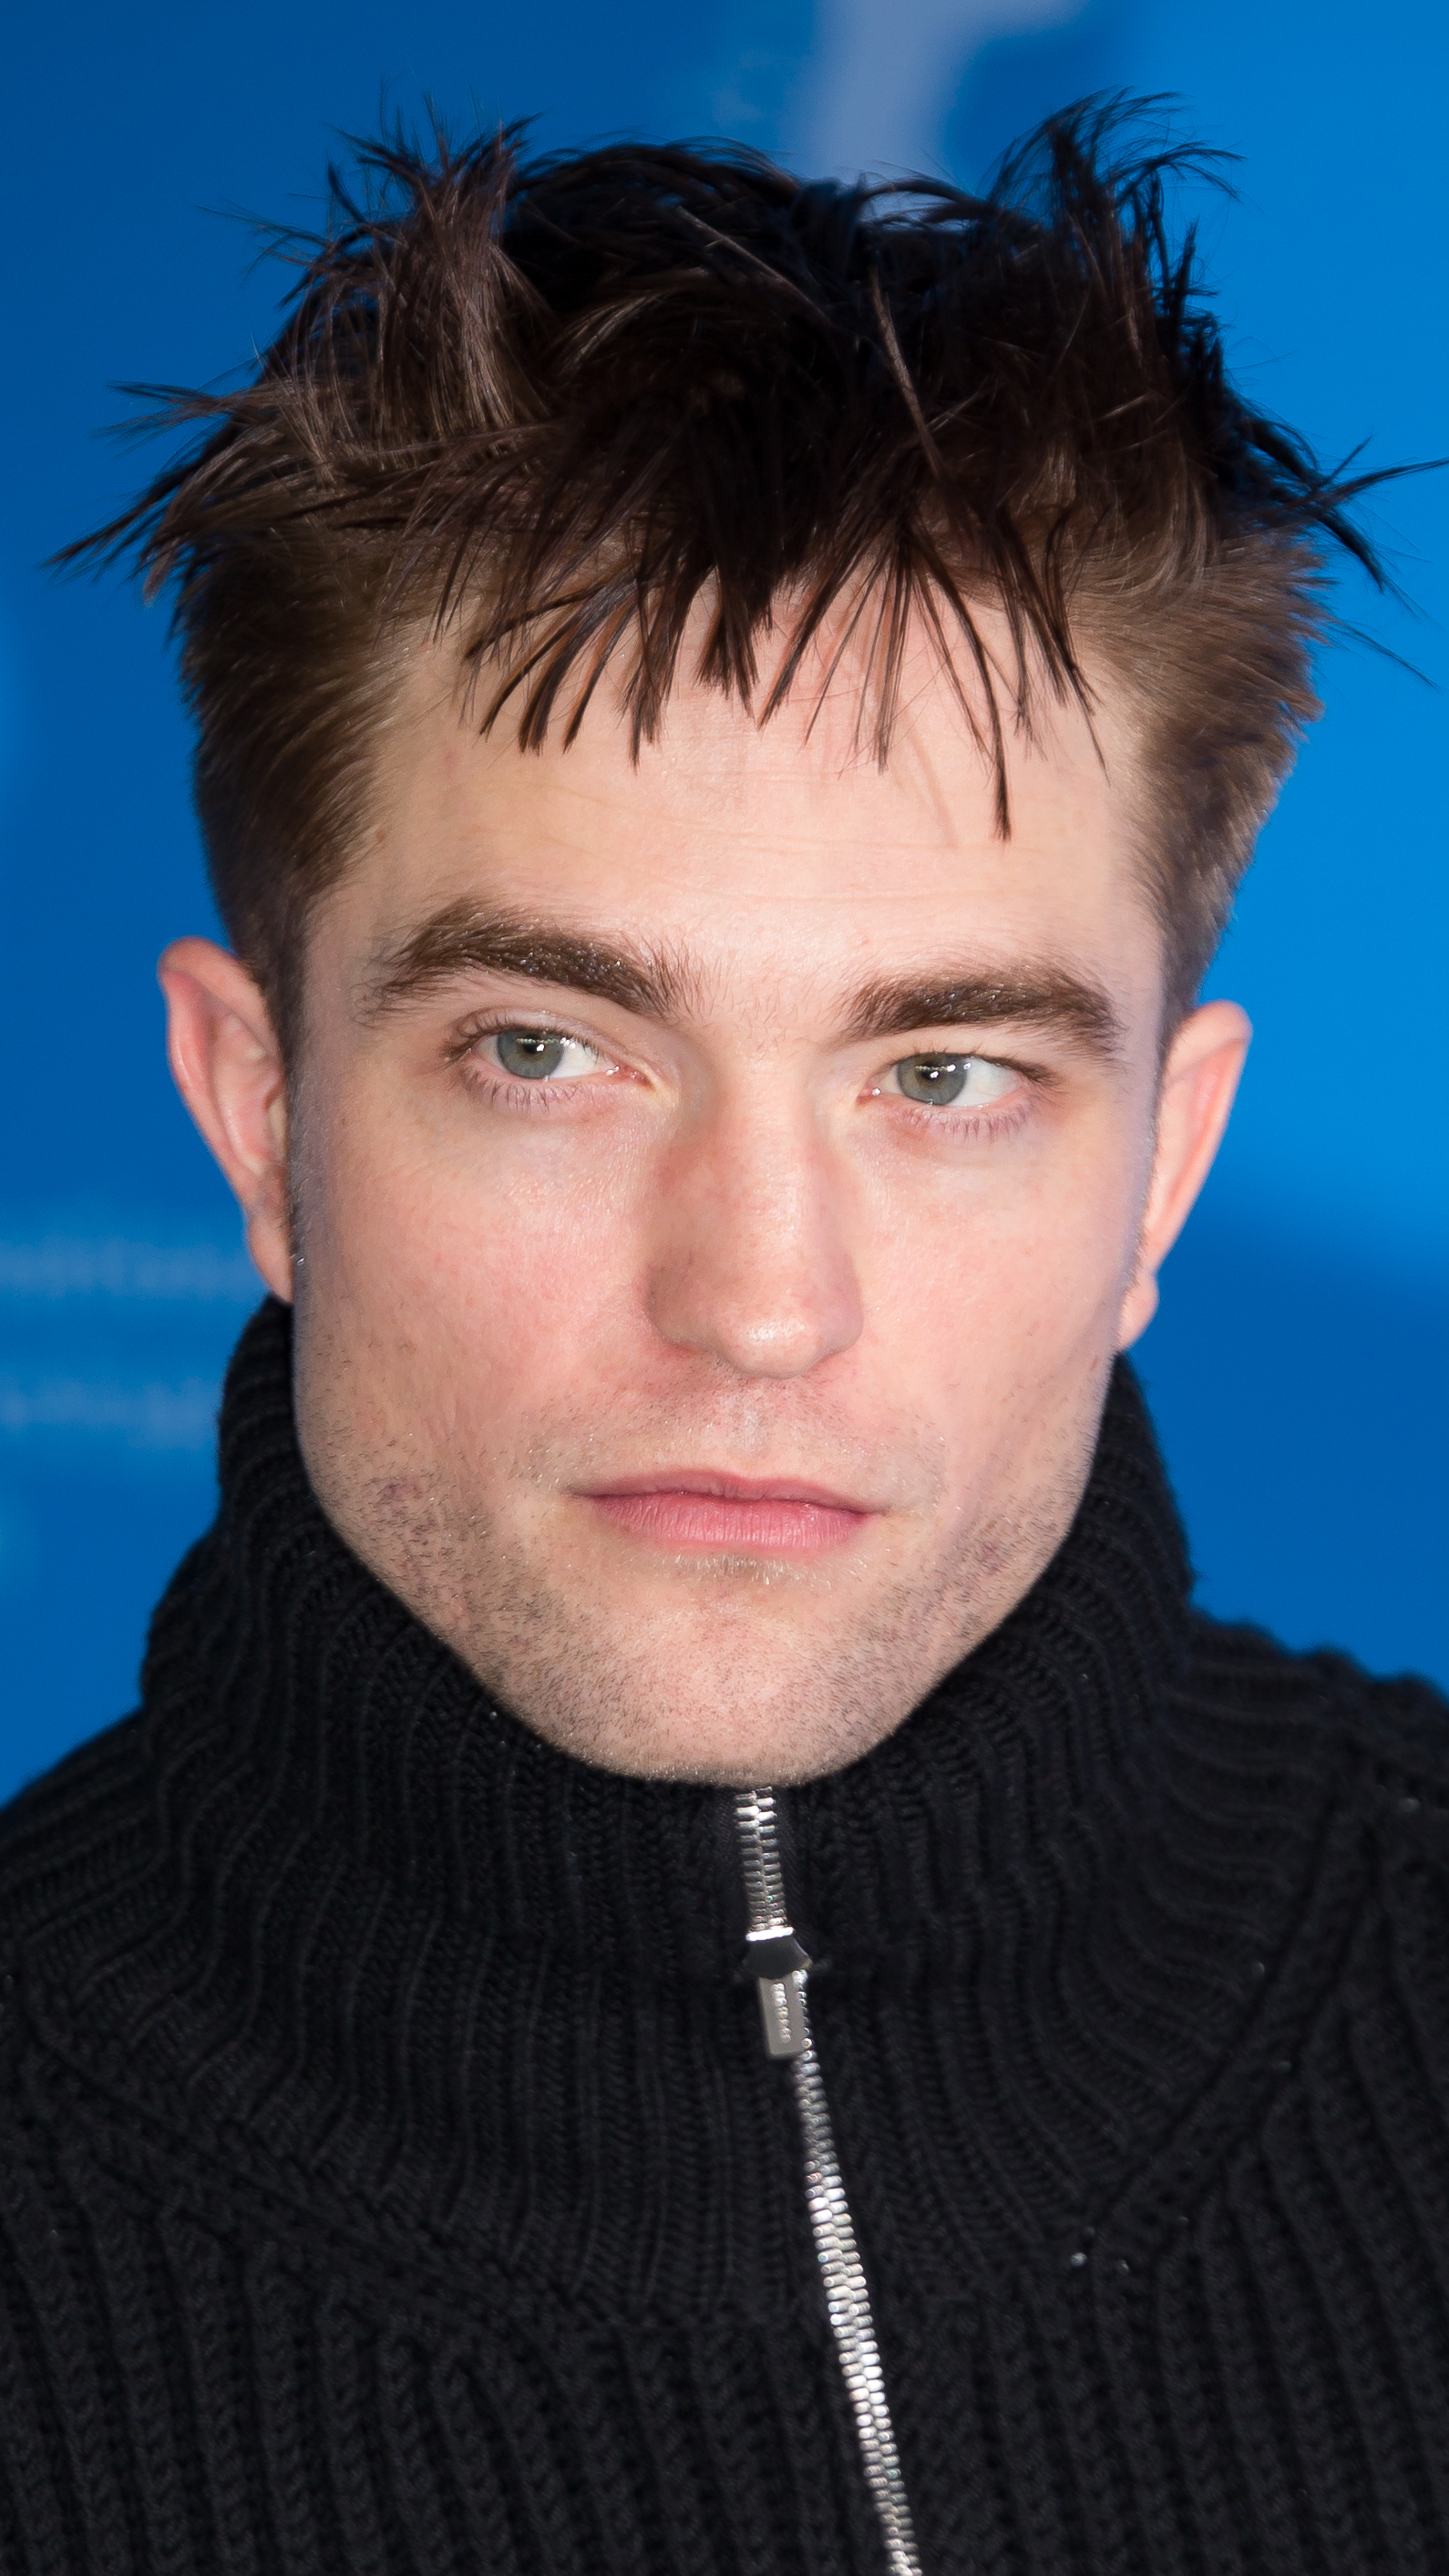 robert pattinson - photo #8